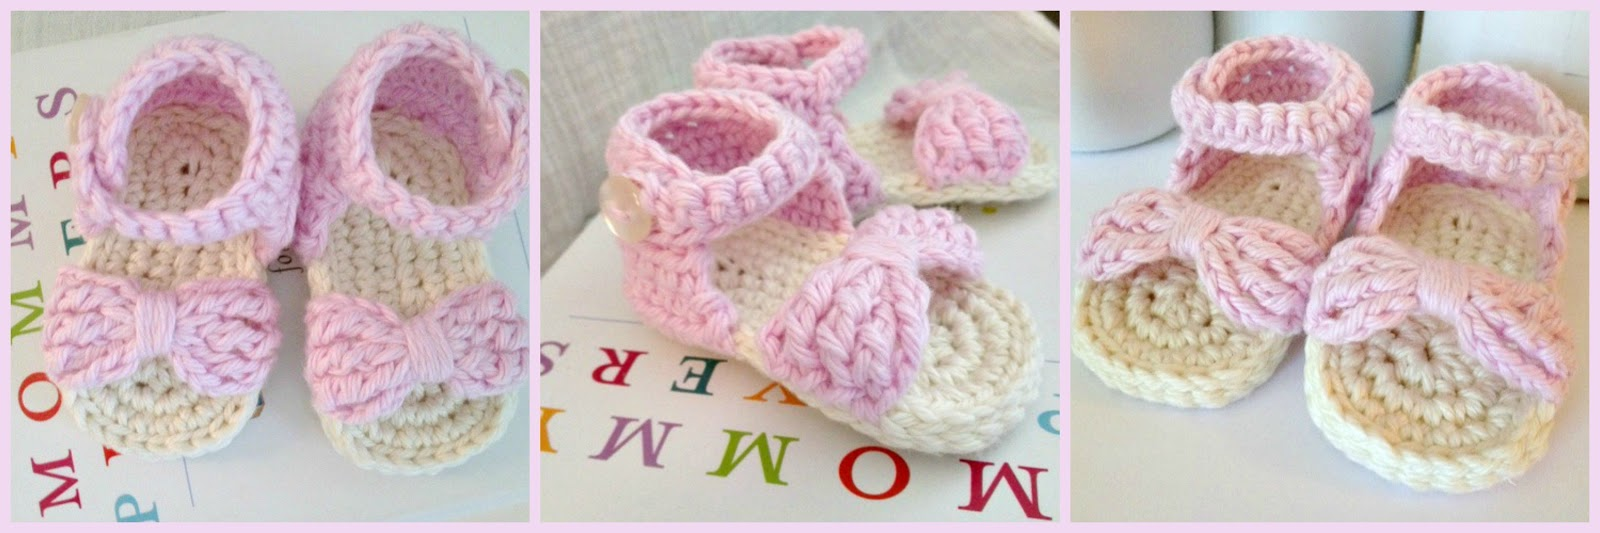 Simple Crochet Patterns For Baby Booties : Crochet Baby Sandals